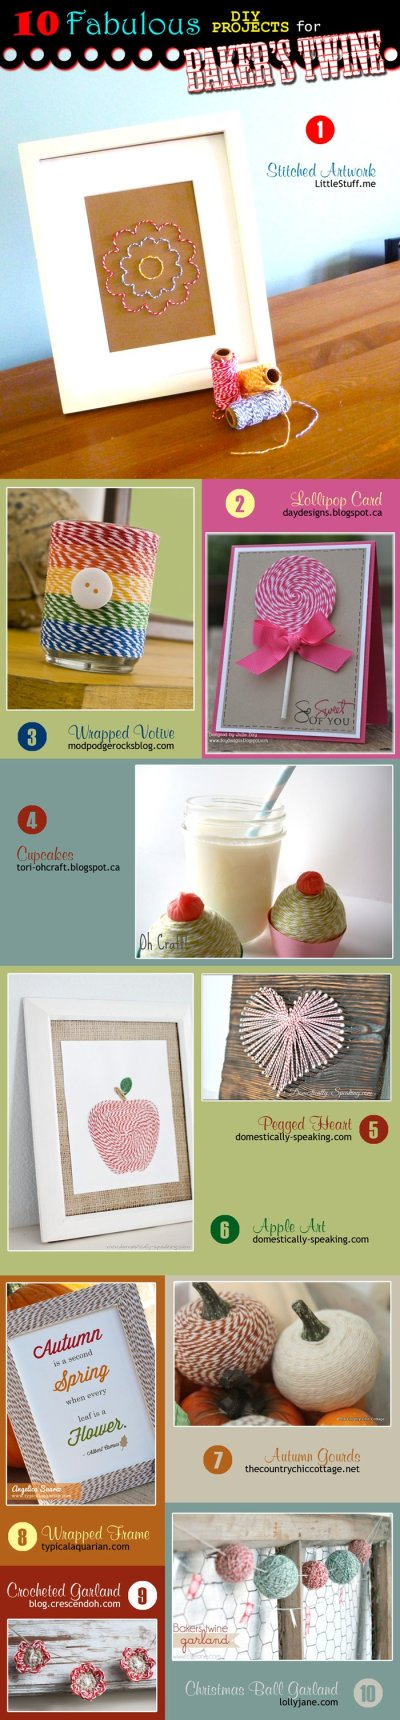 10 Fabulous DIY Projects for Baker's Twine